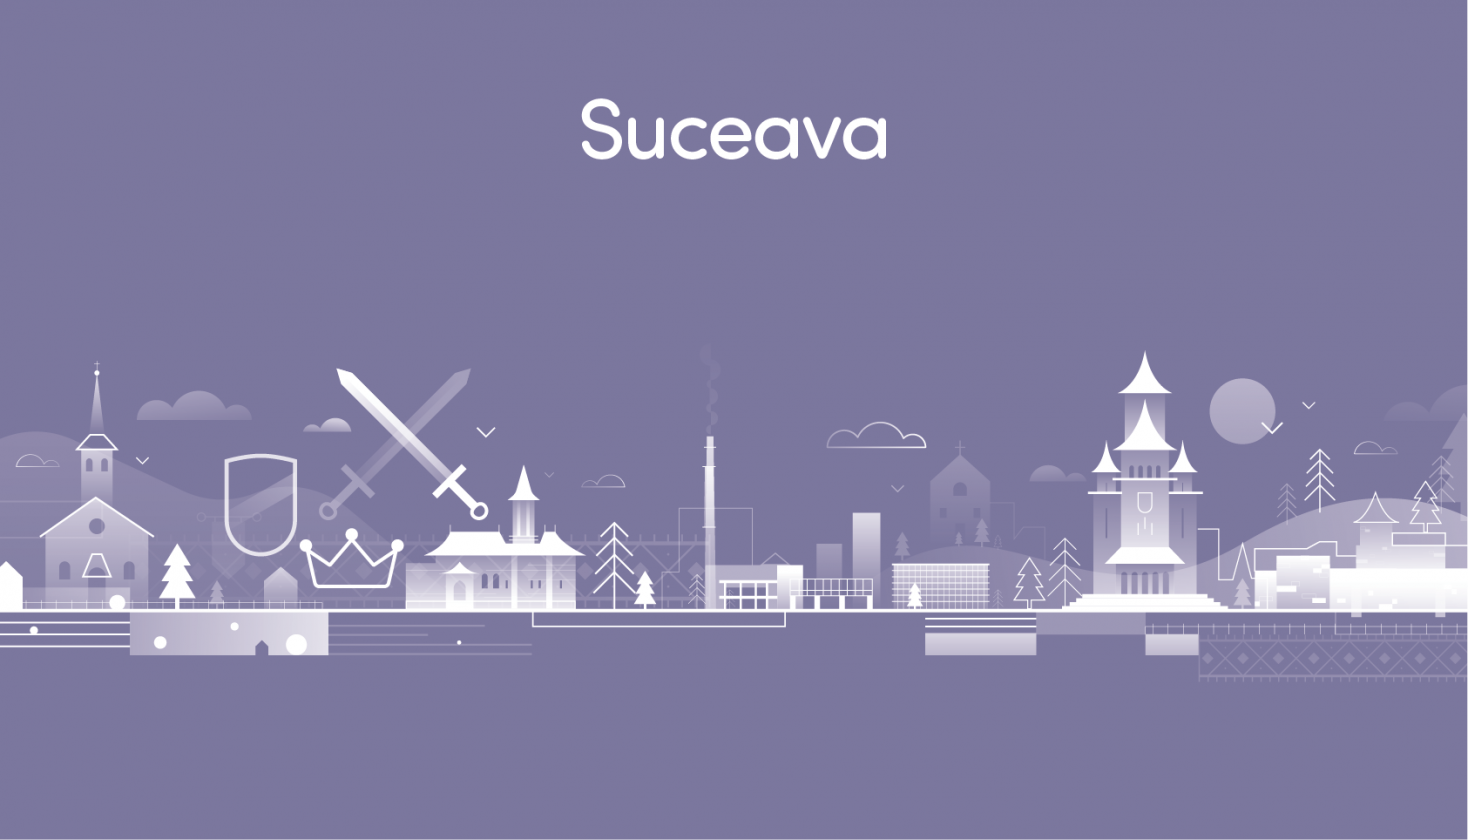 SmartImpact city illustration from animation and brand